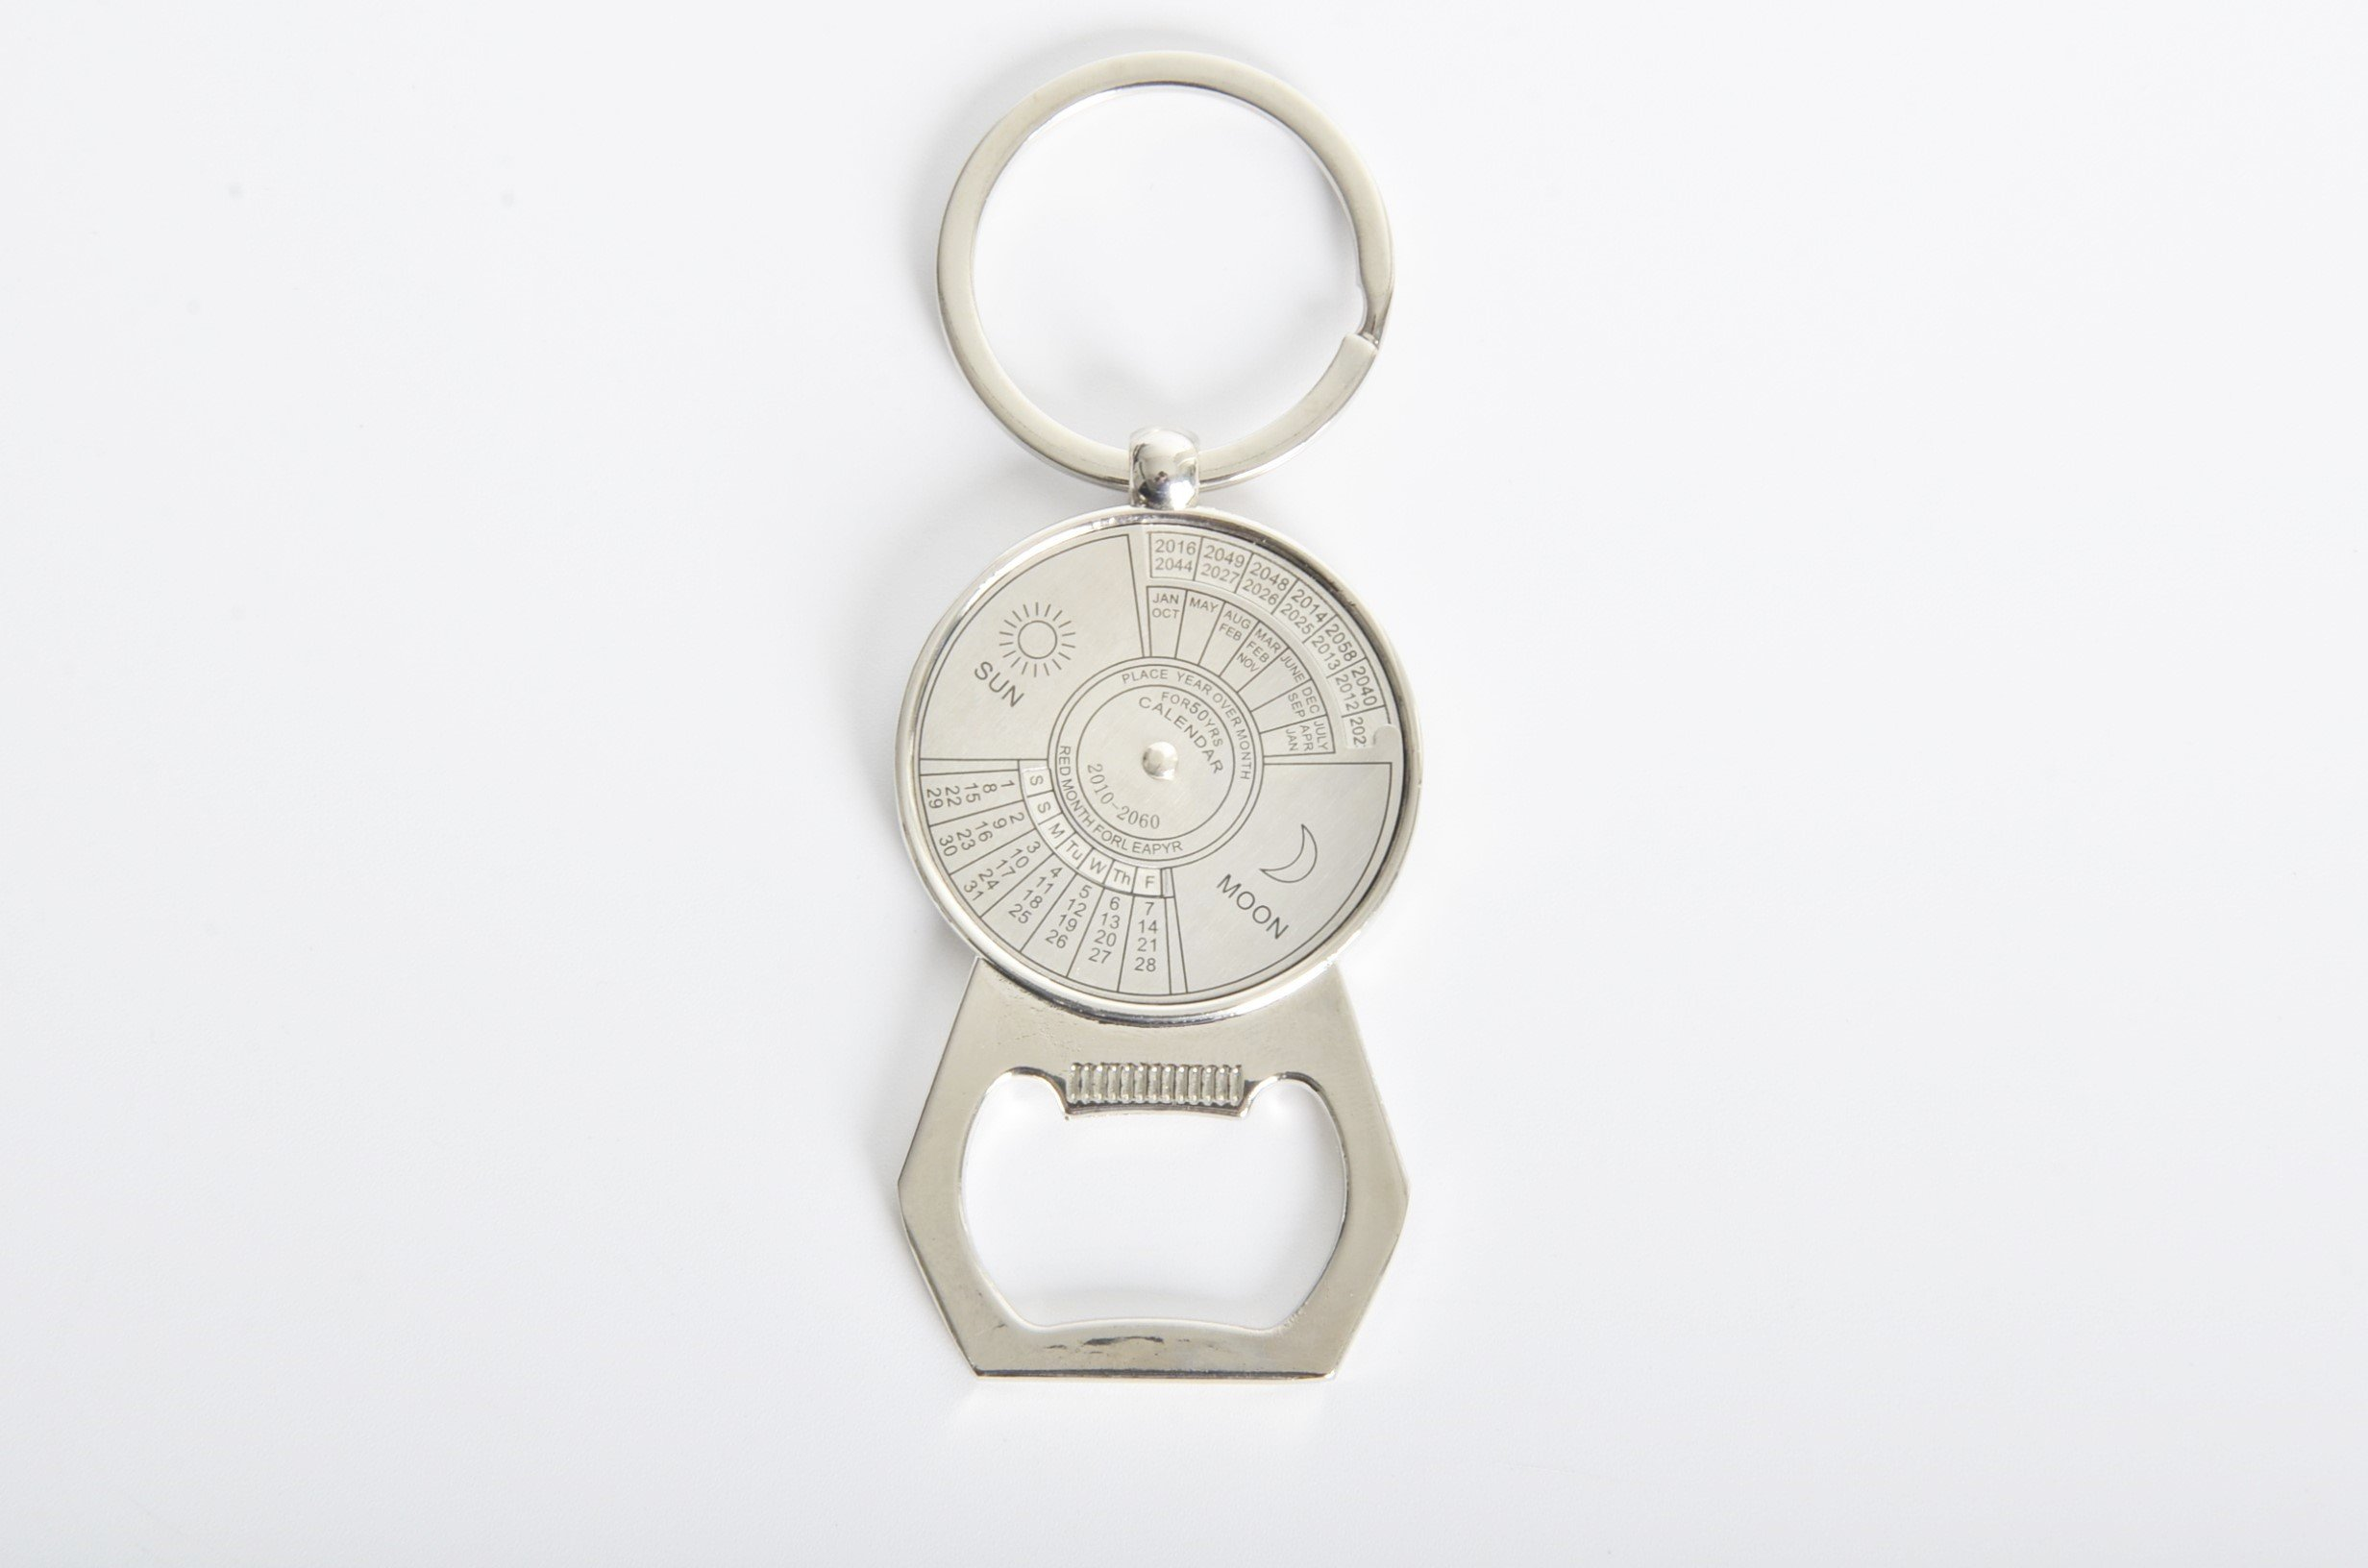 Keychain Multi-function Keyring Heavy Duty Stainless Steel Key Rings with Bottle opener MGCFTan Calendar accessories